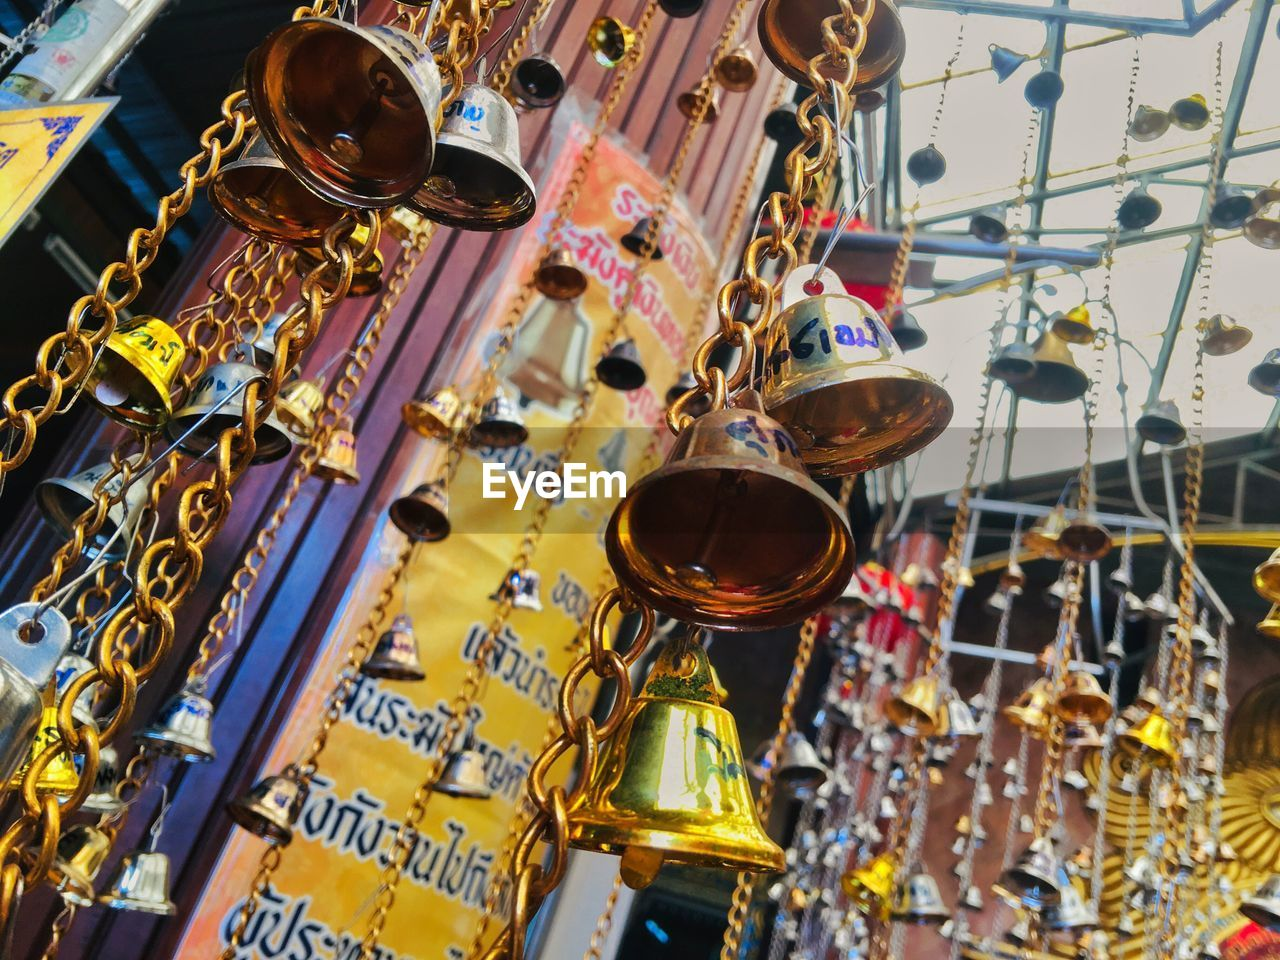 music, no people, hanging, musical instrument, indoors, low angle view, arts culture and entertainment, choice, variation, day, musical equipment, focus on foreground, gold colored, large group of objects, decoration, lighting equipment, still life, text, metal